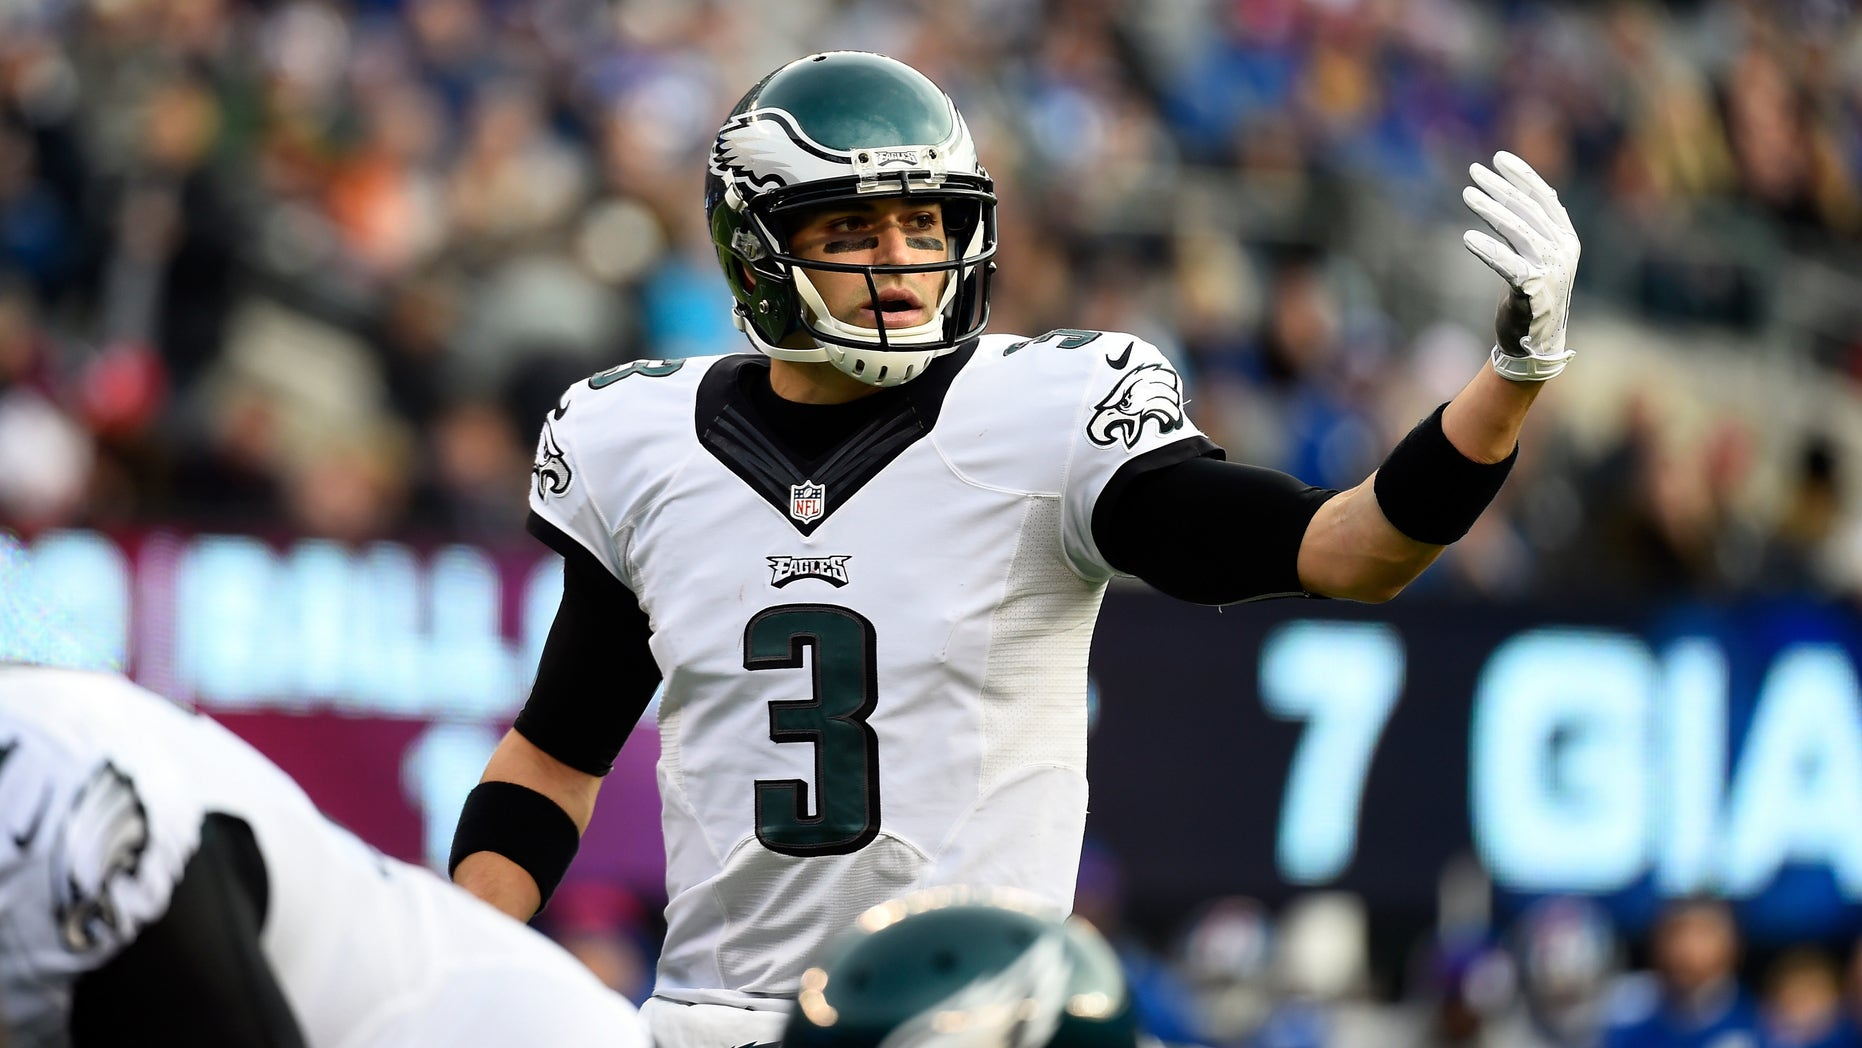 EAST RUTHERFORD, NJ - DECEMBER 28:  Mark Sanchez #3 of the Philadelphia Eagles looks on against the New York Giants during a game at MetLife Stadium on December 28, 2014 in East Rutherford, New Jersey.  (Photo by Alex Goodlett/Getty Images)